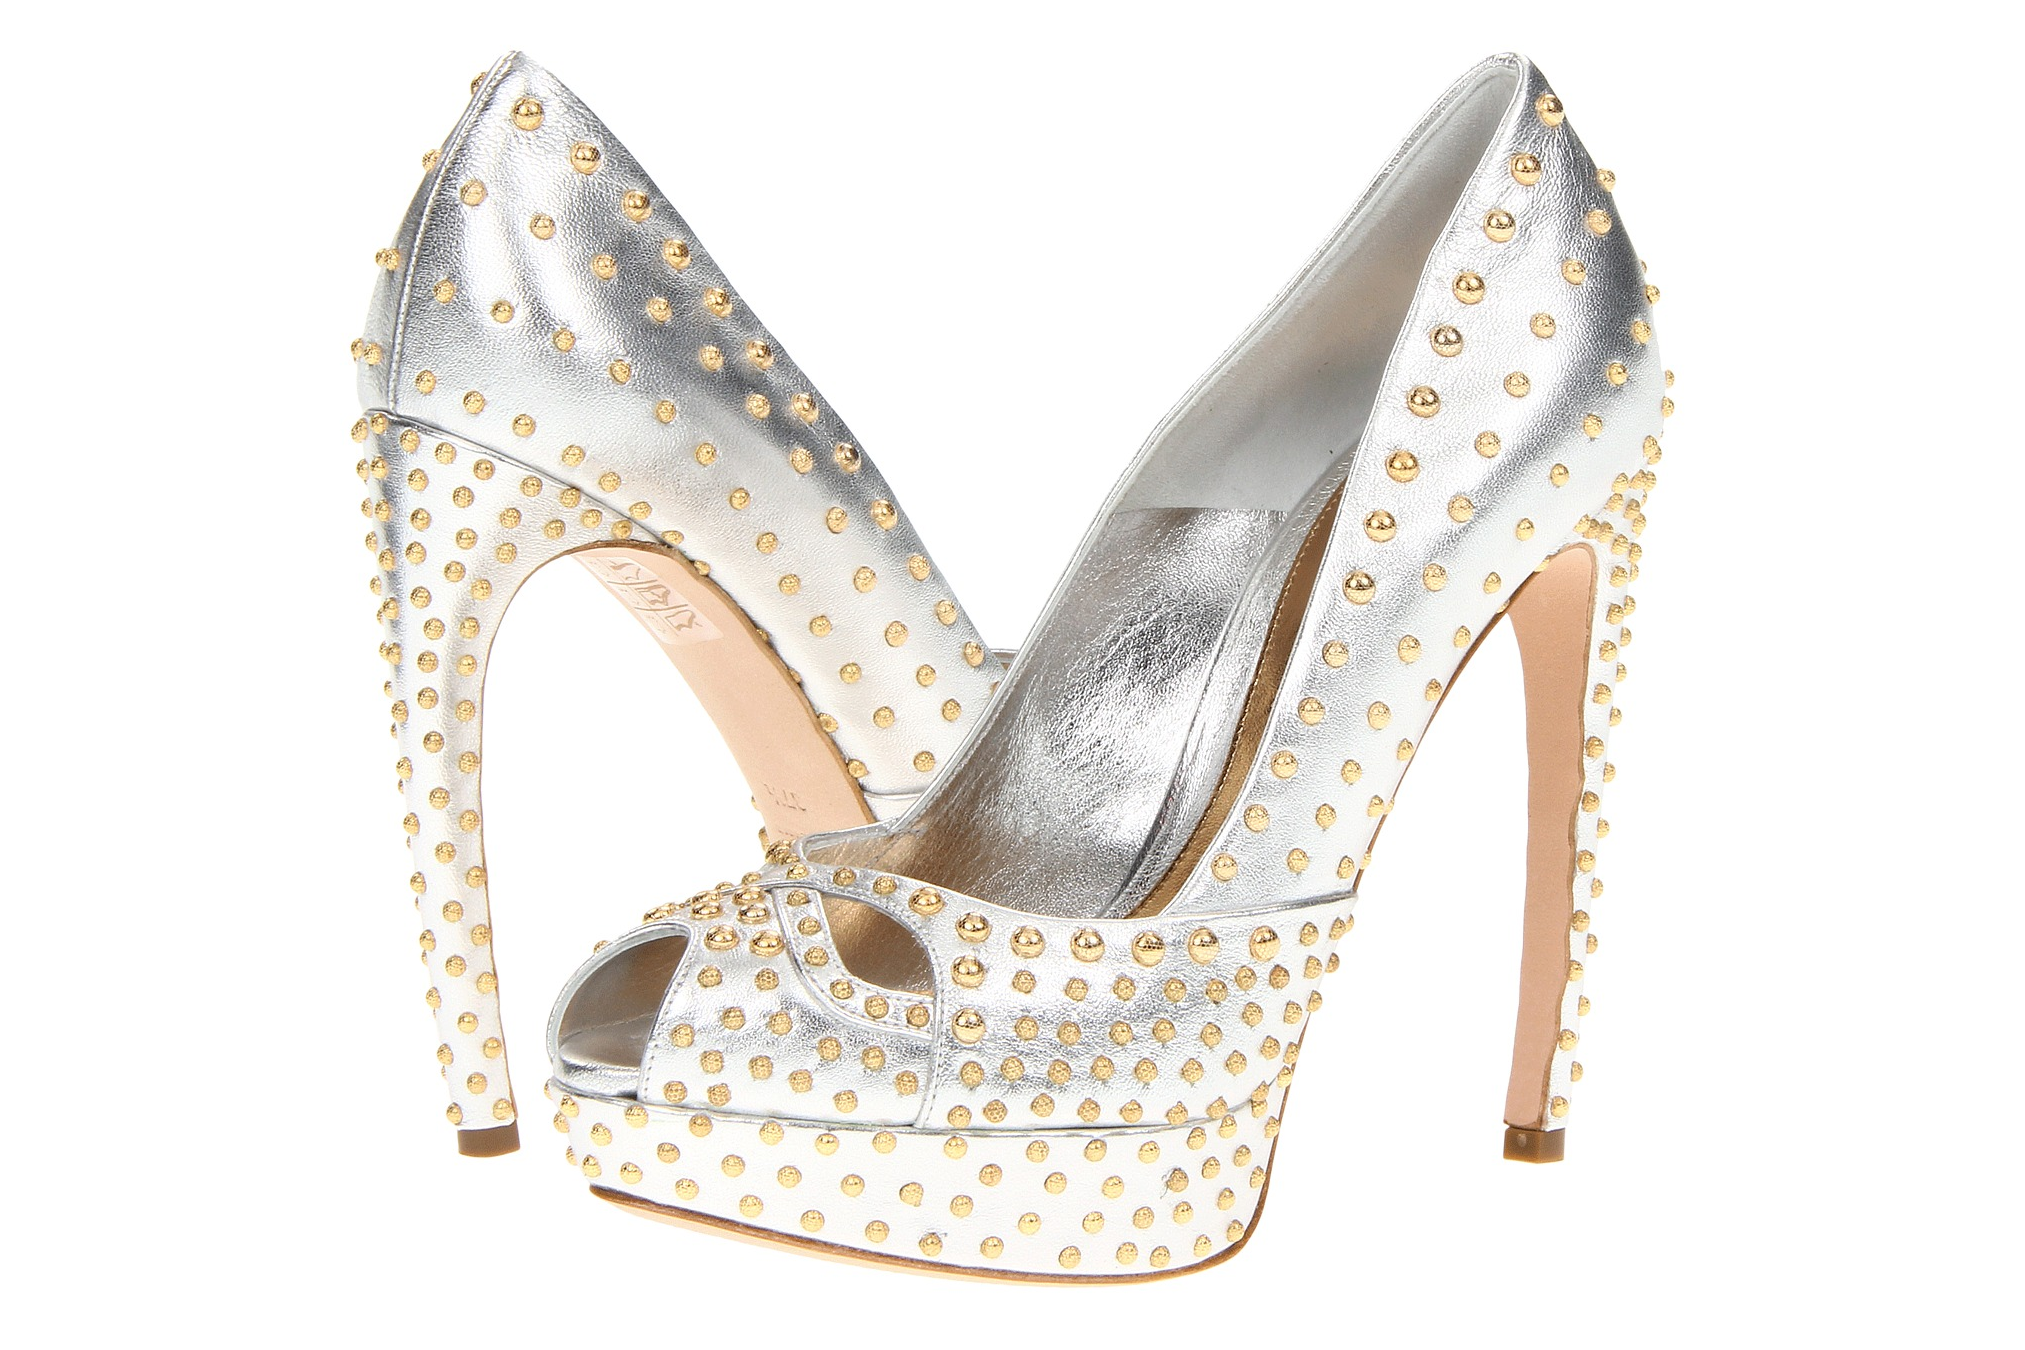 Glamorous gold wedding shoes Alexander McQueen | OneWed.com